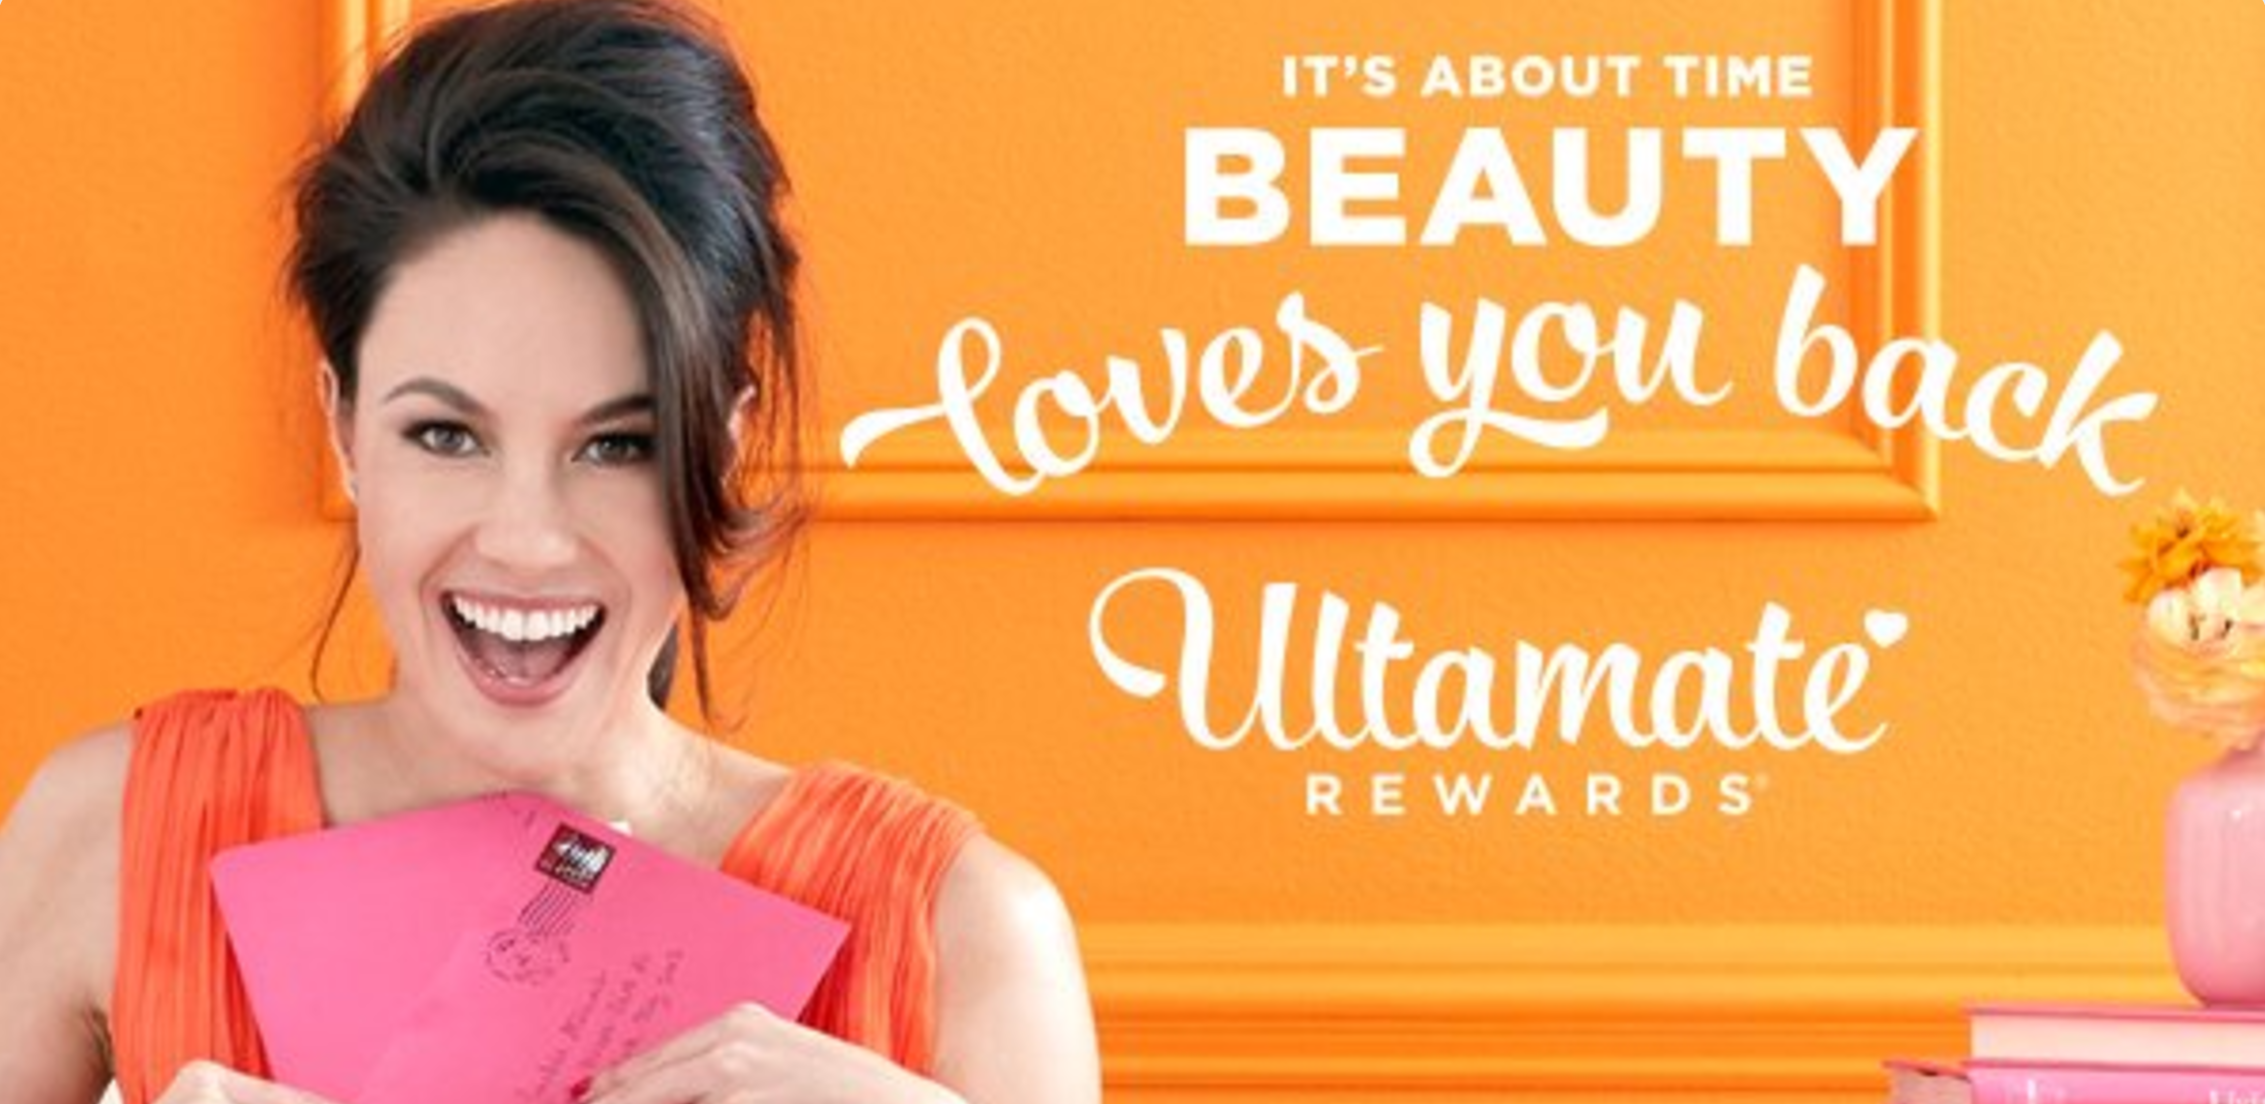 Get 10 to spend. I really love Ulta Beauty's Ultamate Rewards program and thought you should know about it! It's free to join and they make it so easy to earn points that can be redeemed for dollars off ANY products in the store or on the web. https://refer.ulta.com/s/Genny8